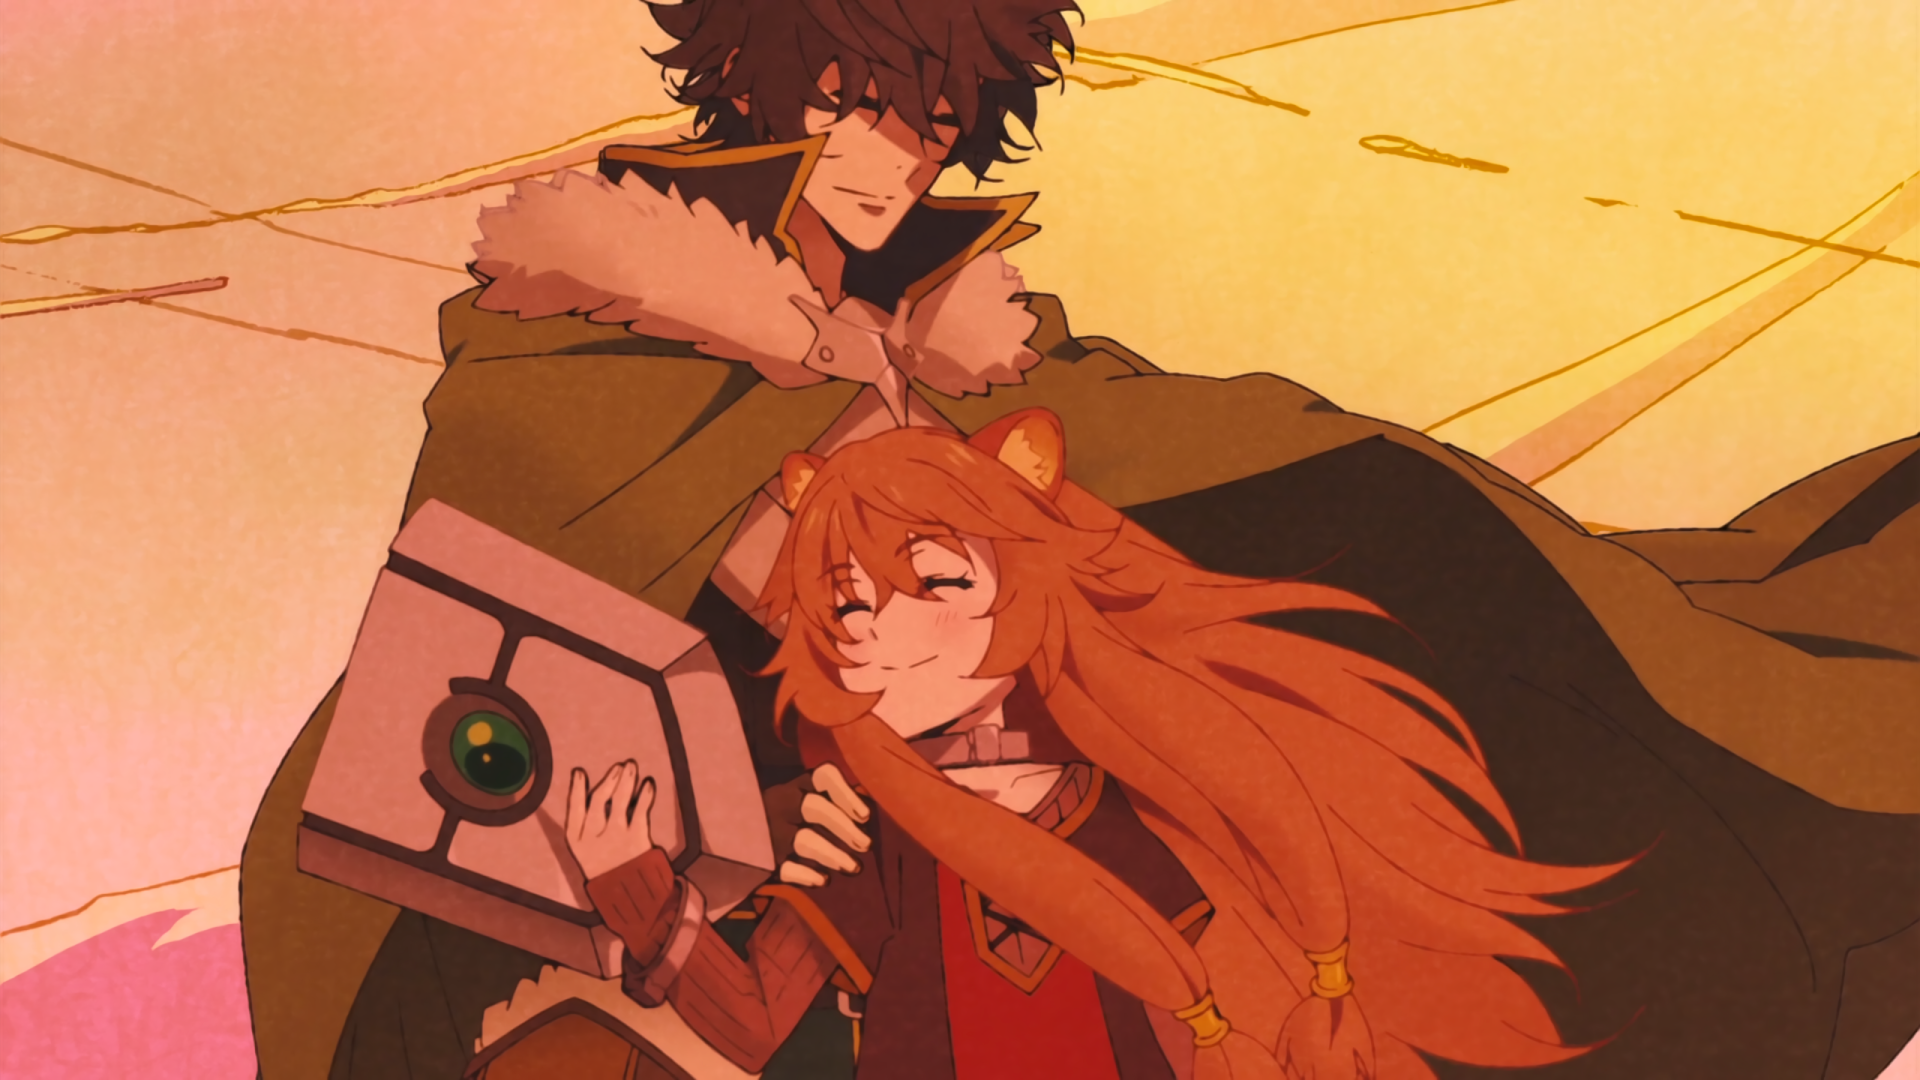 2560x1440 The Rising Of The Shield Hero Wallpaper Background Image View Download Comment And Rate Wallpaper Abyss Hero Wallpaper Anime Anime Songs